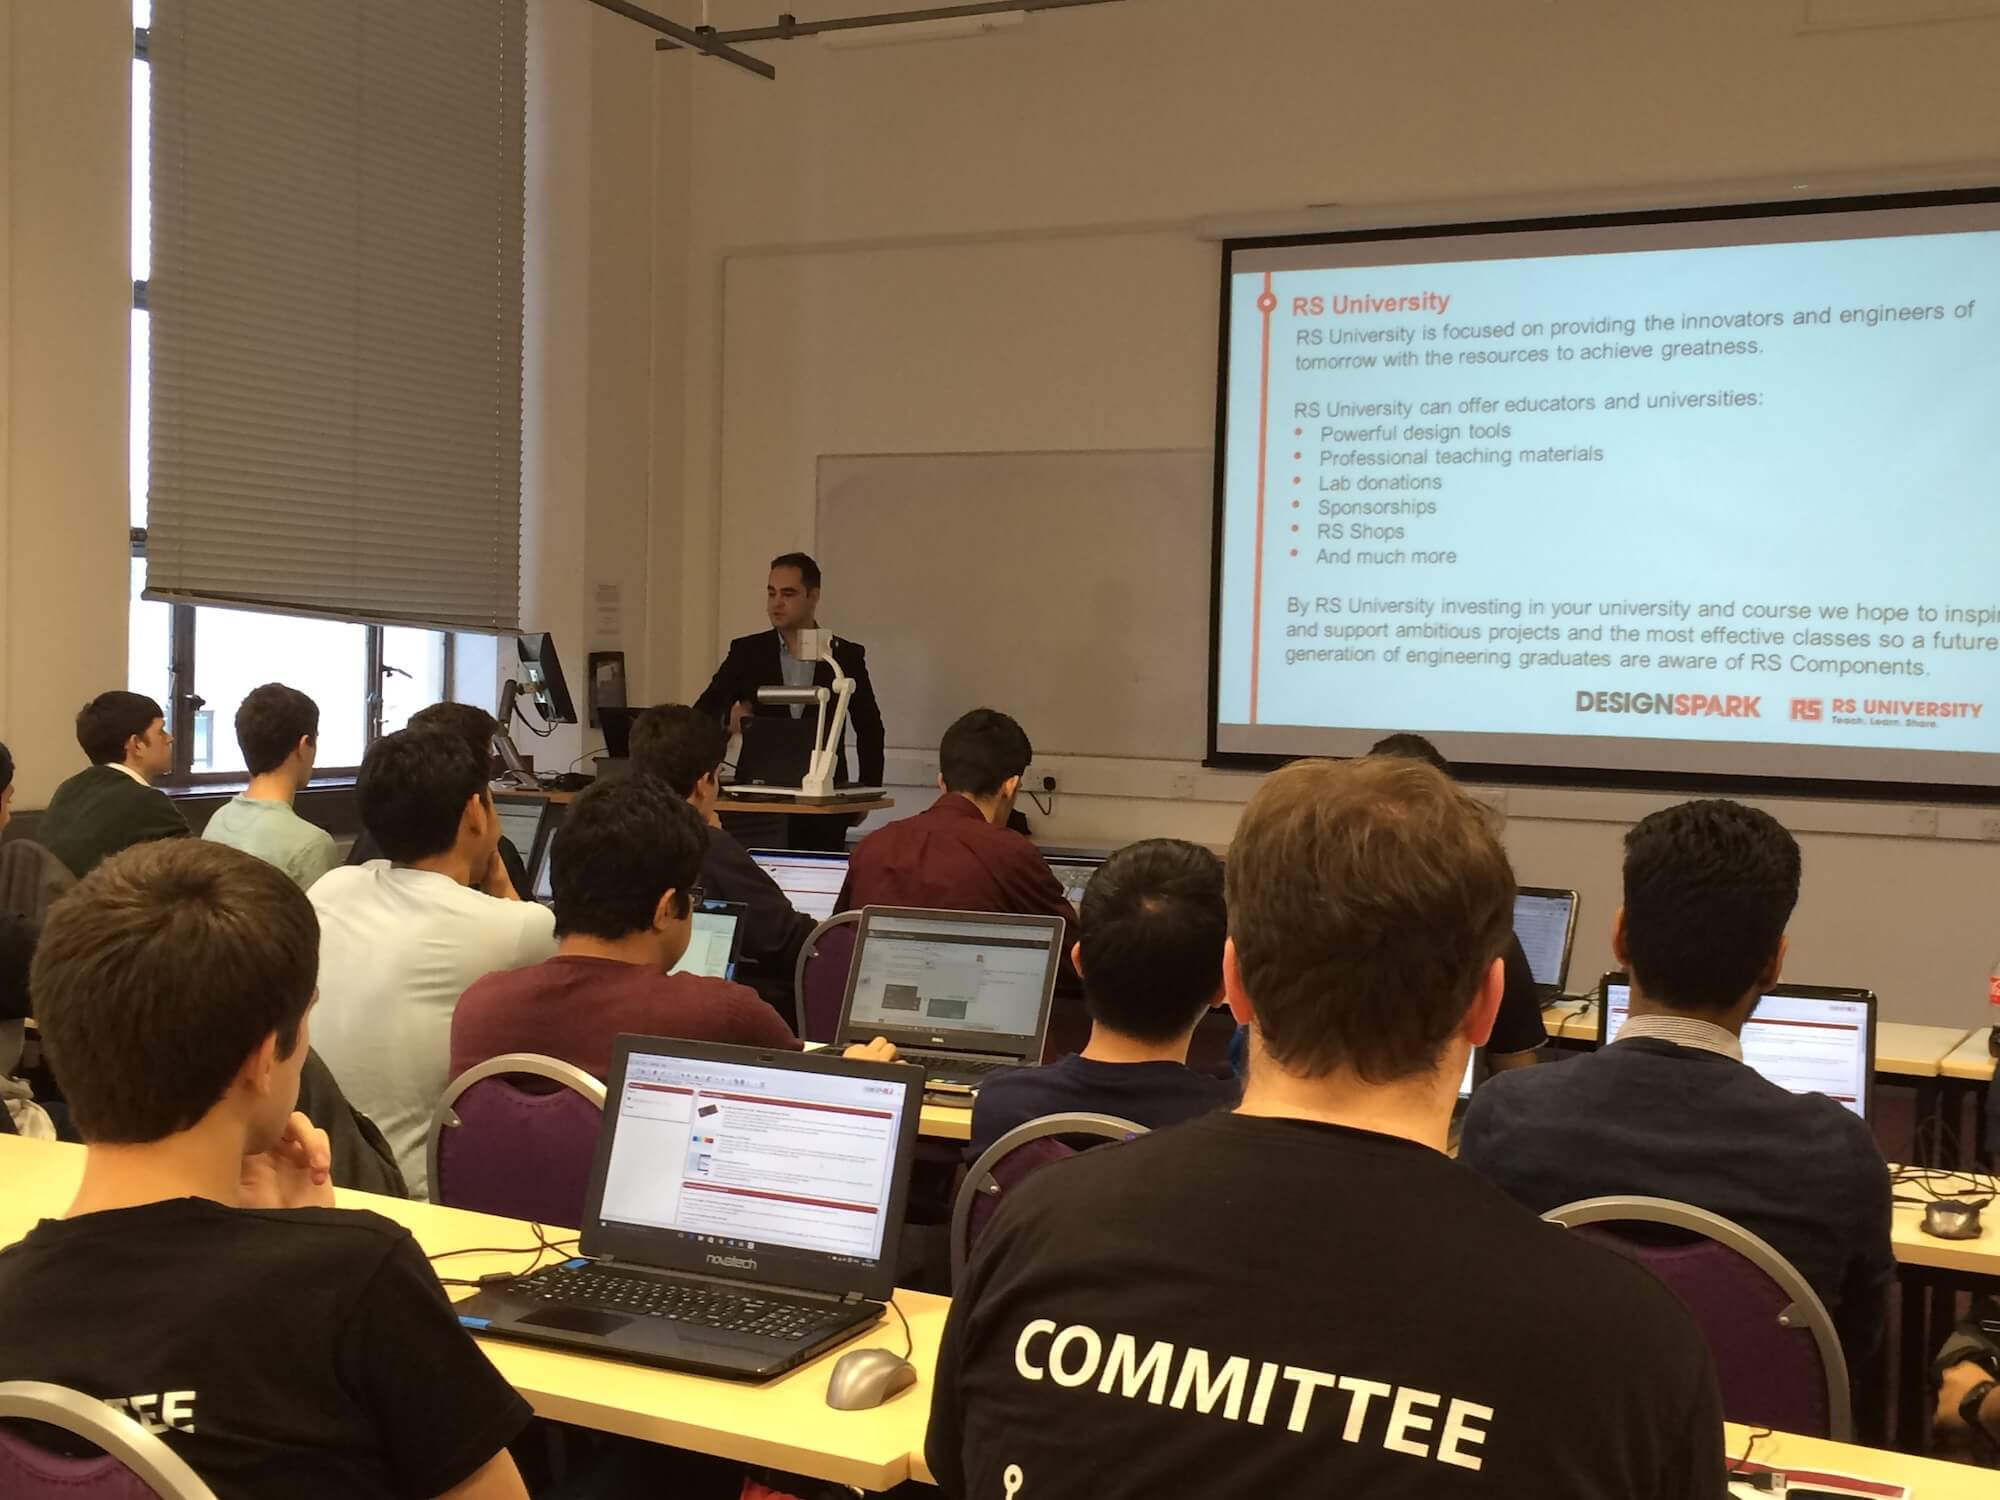 RSU - 'RS University' - Manager, Mitch Da Silva, presenting at Bristol University. October 2015